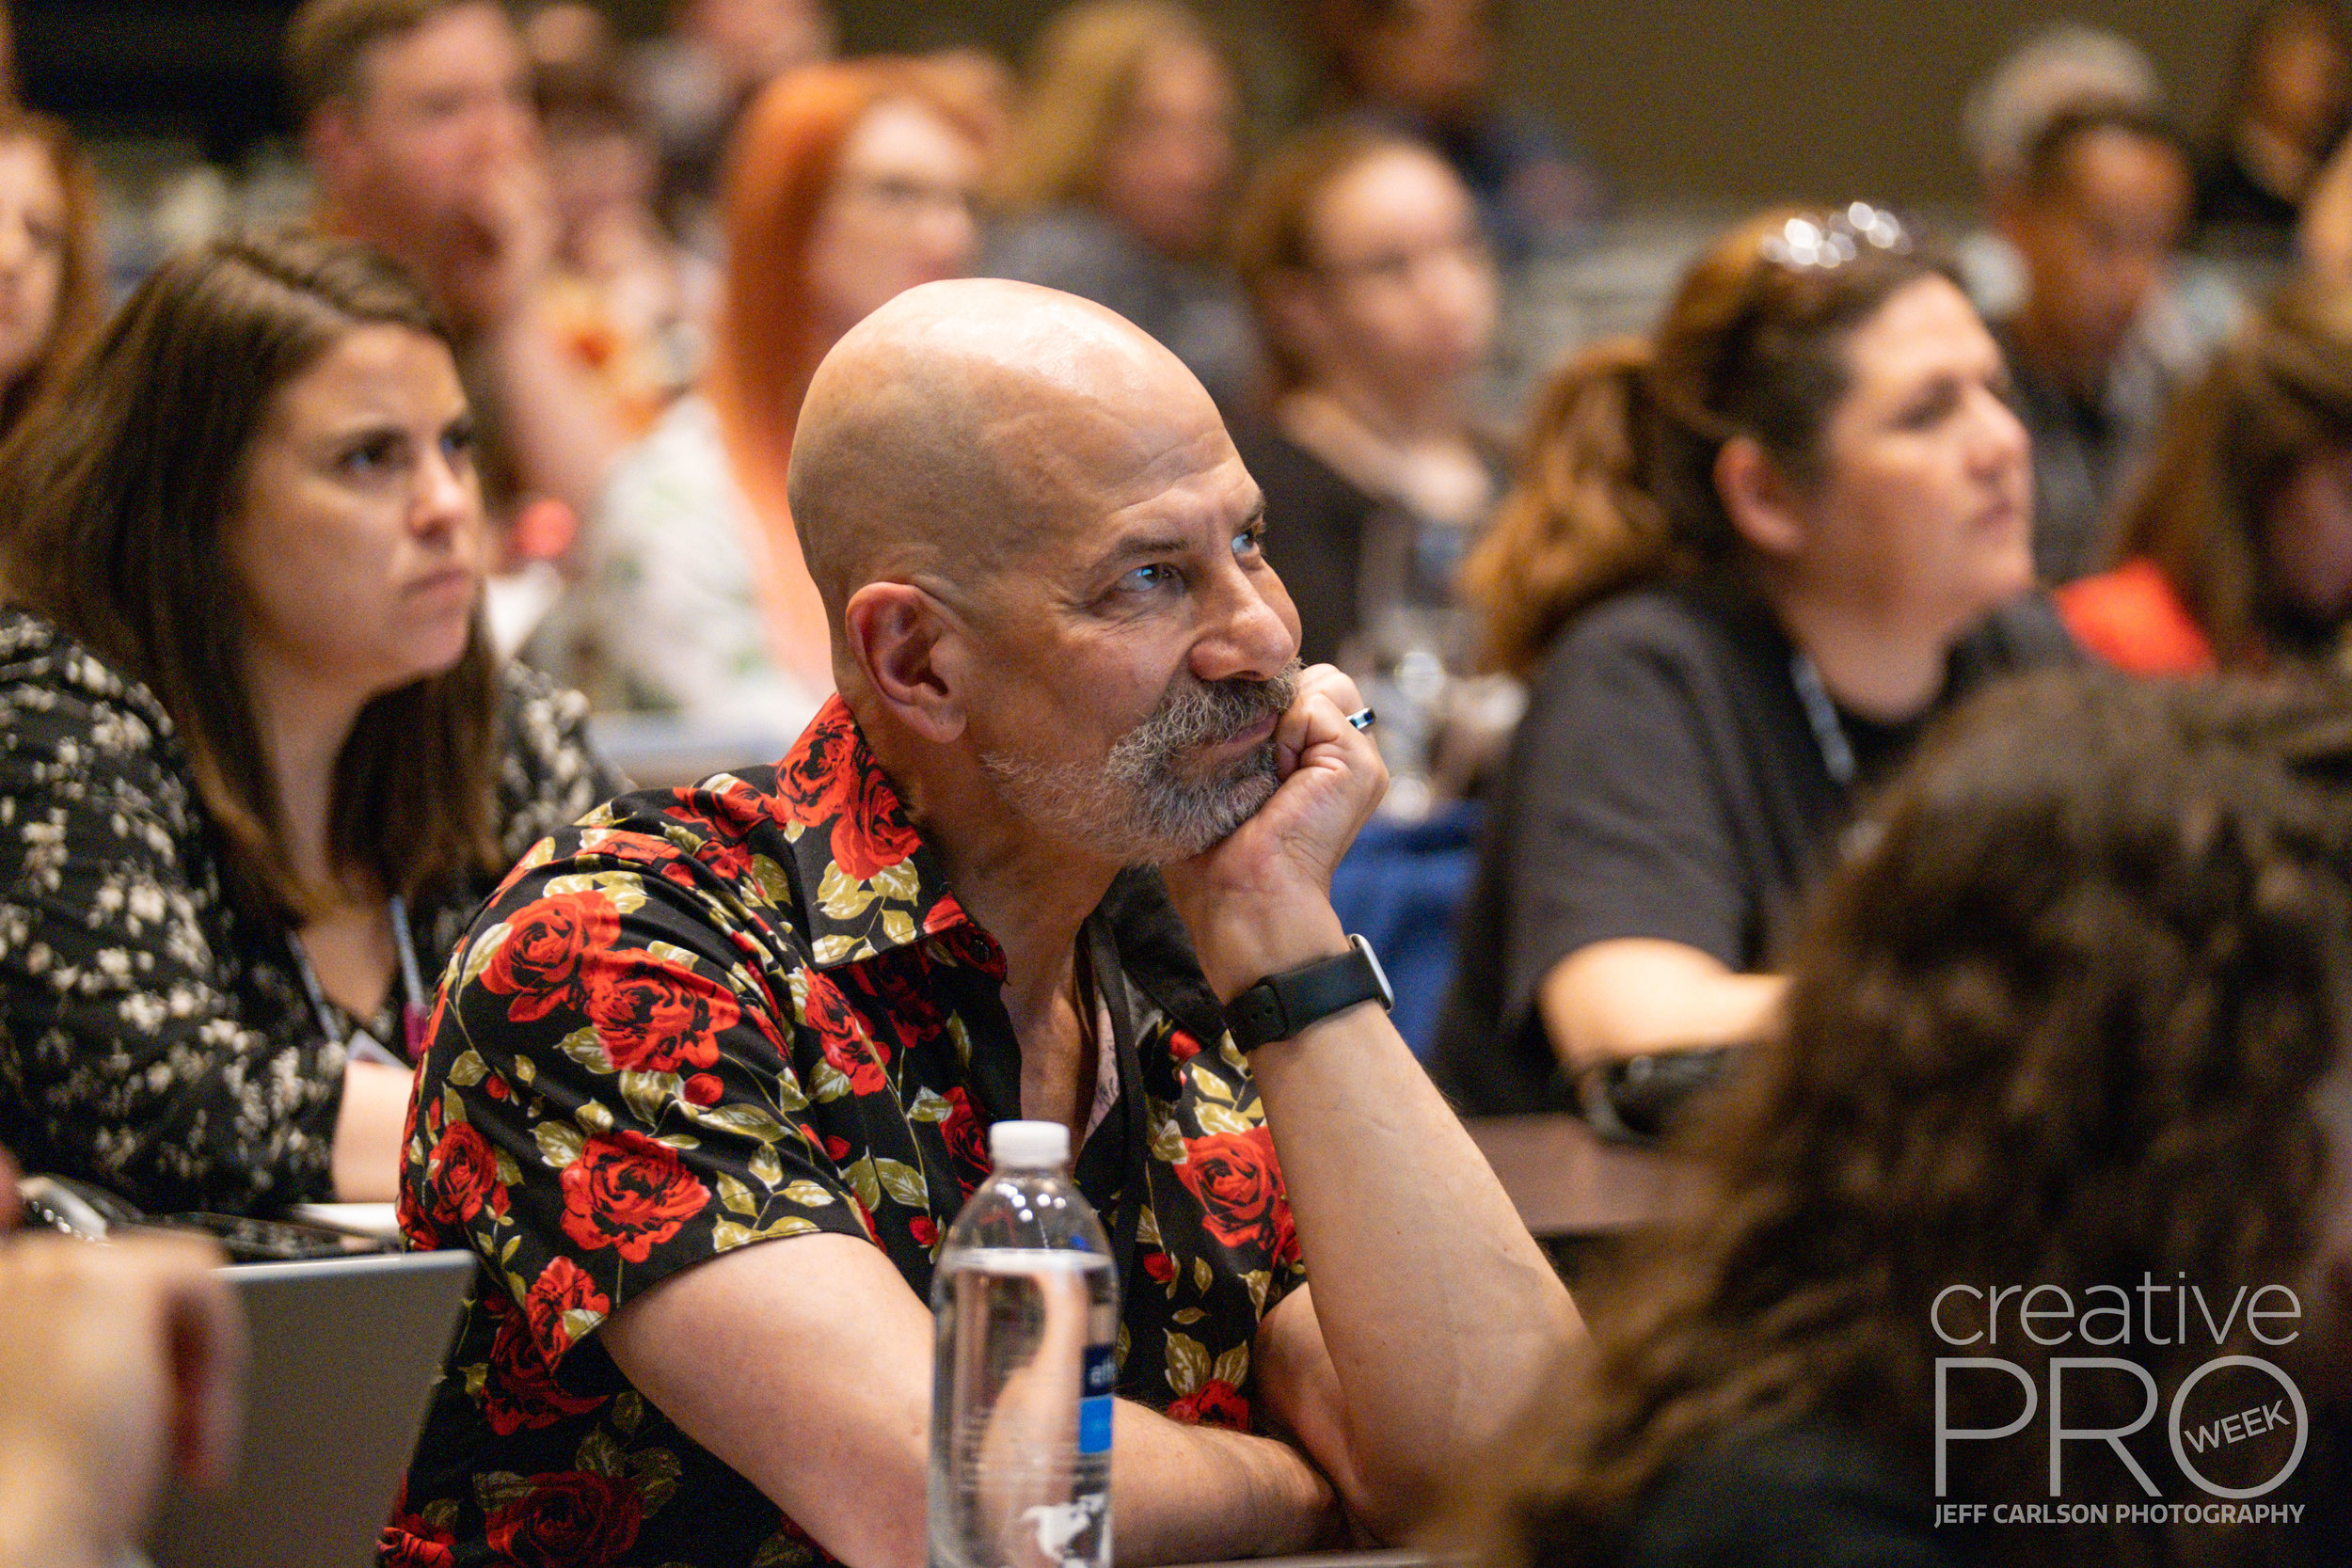 A rapt attendee at CreativePro Week 2019  Camera: Fujifilm X-T3 Shutter speed: 1/160 sec Aperture: f/2.8 ISO: 6400 Lens: Fujifilm XF 50-140mm f/2.8 LM OIS WR Photo: Jeff Carlson, courtesy of CreativePro Week